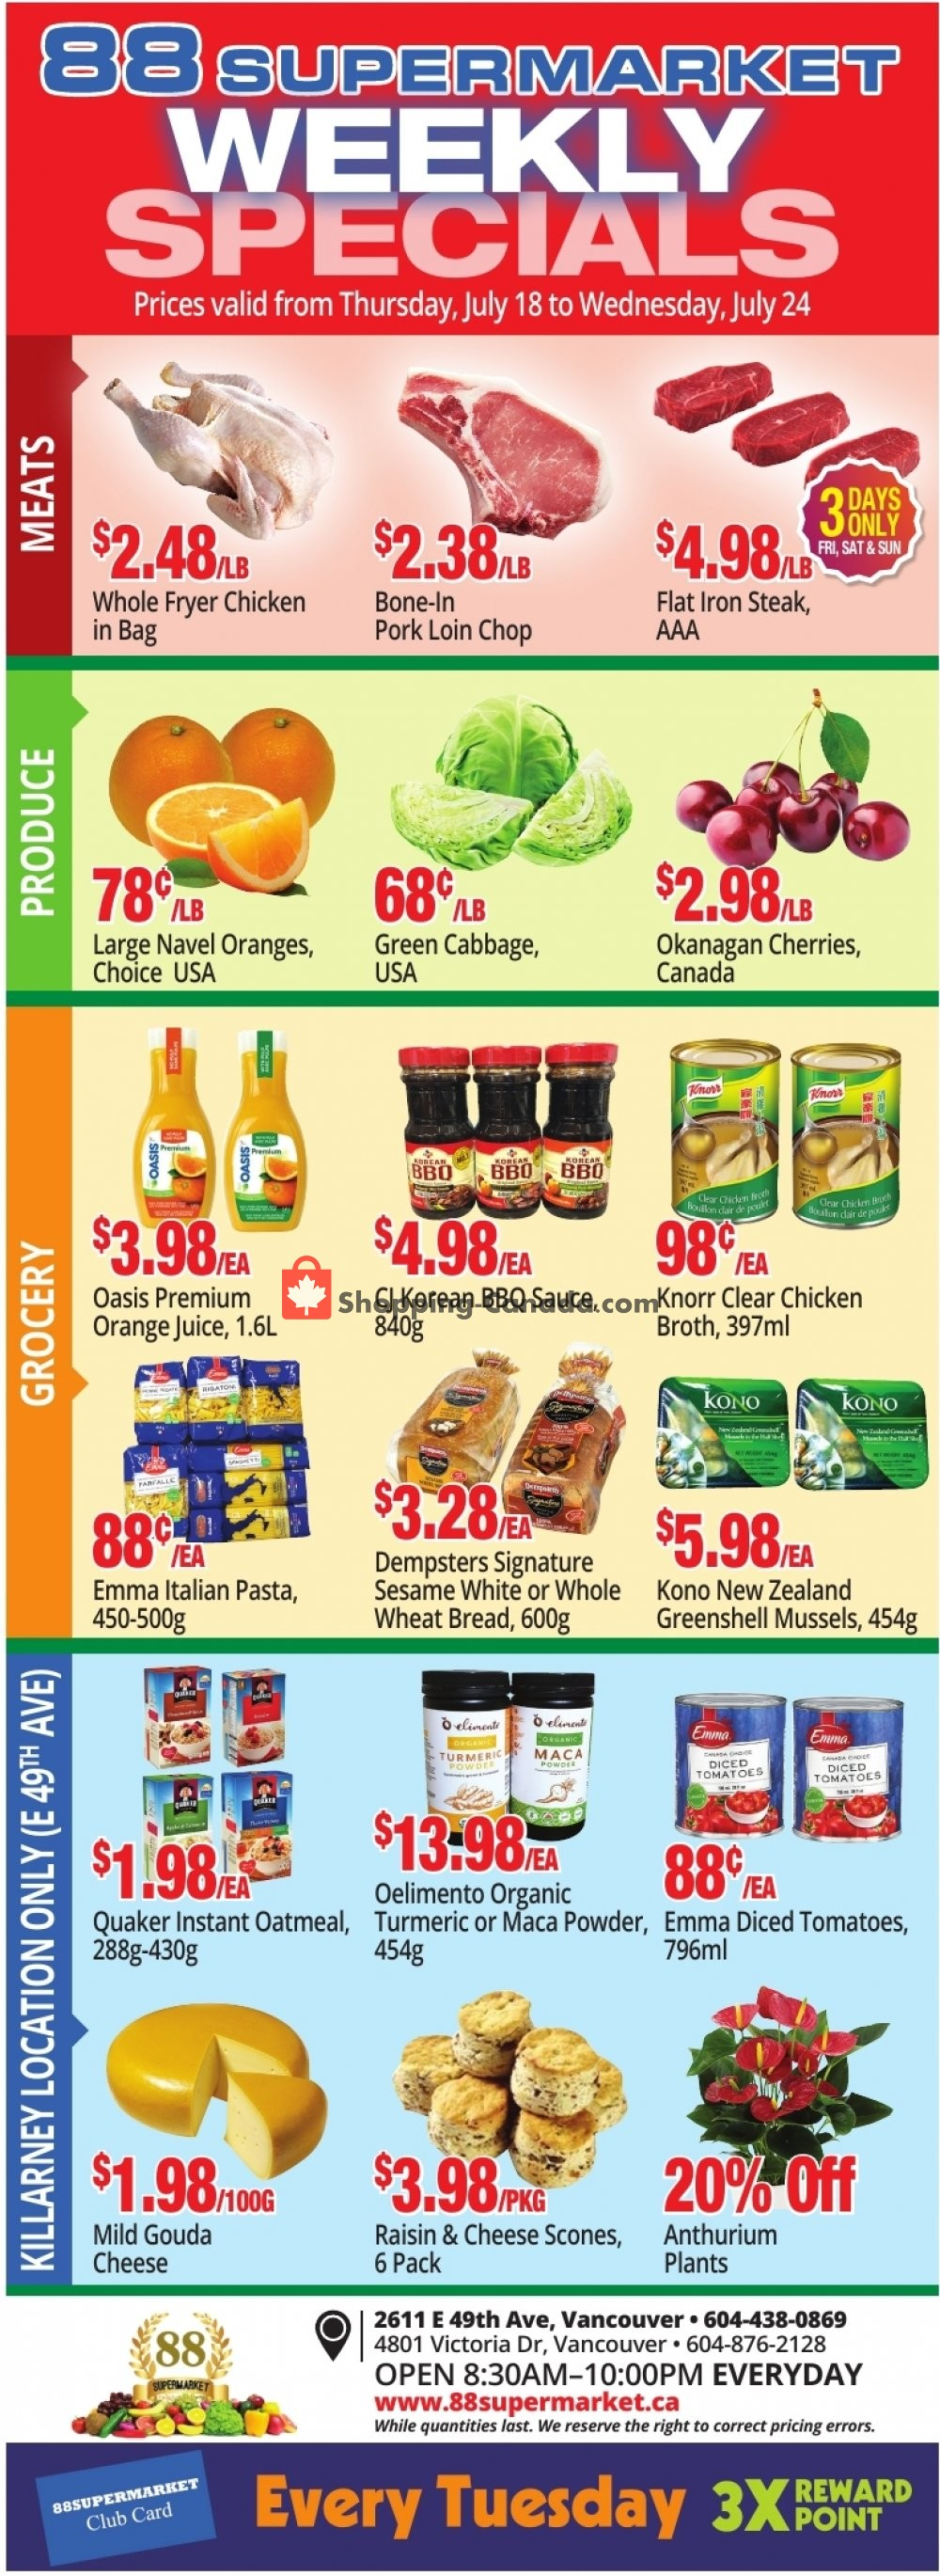 Flyer 88 Supermarket Canada - from Thursday July 18, 2019 to Wednesday July 24, 2019